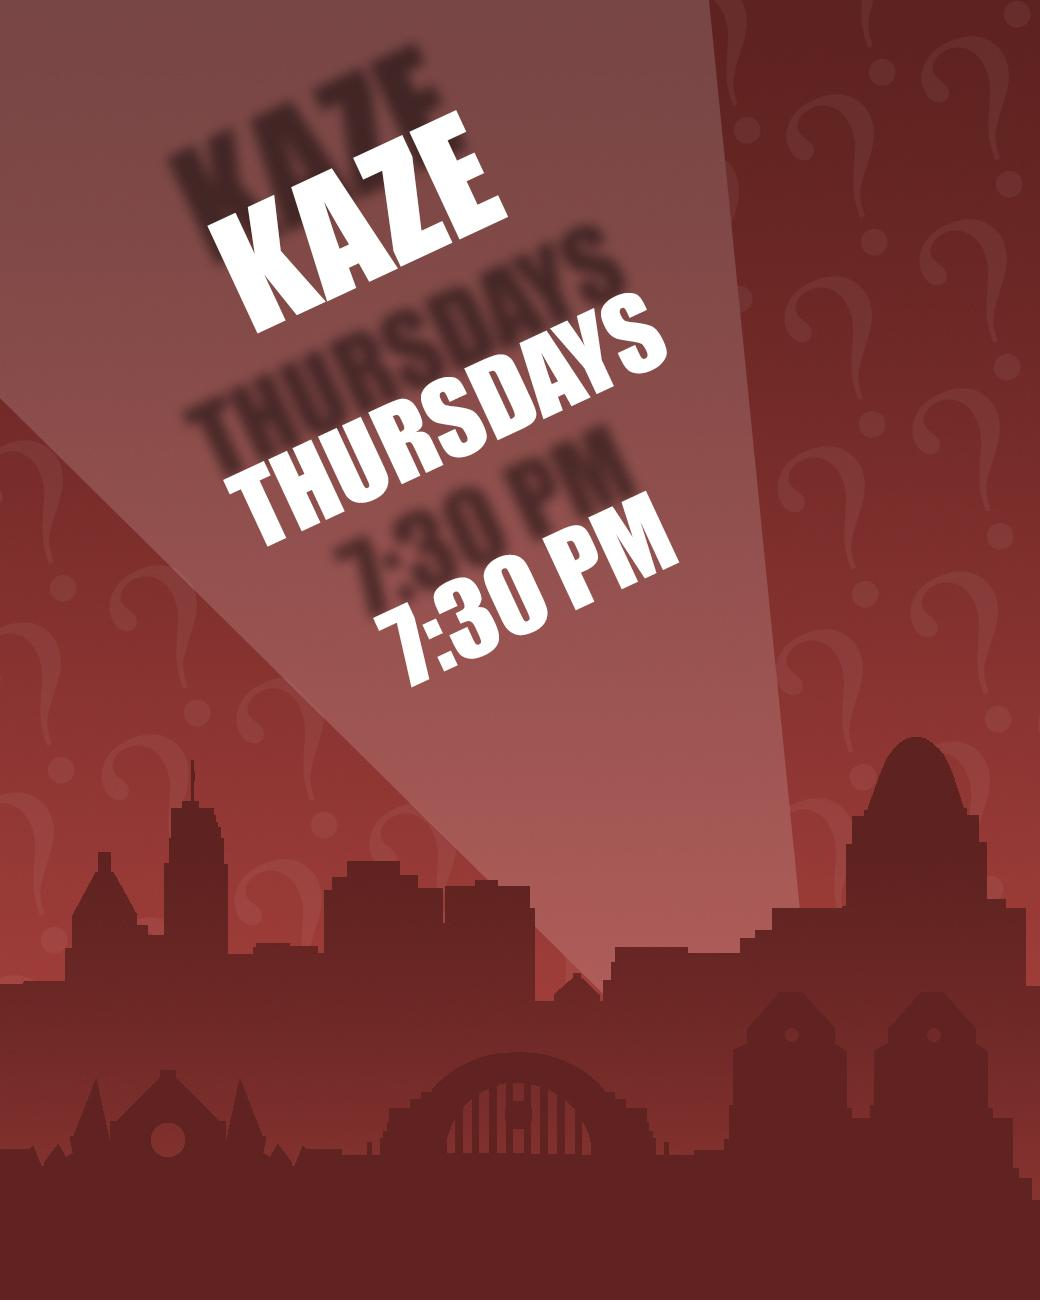 Kaze has trivia every Thursday starting at 7:30 PM. ADDRESS: 1400 Vine Street (45202) / Image: Phil Armstrong, Cincinnati Refined // Published: 8.30.17